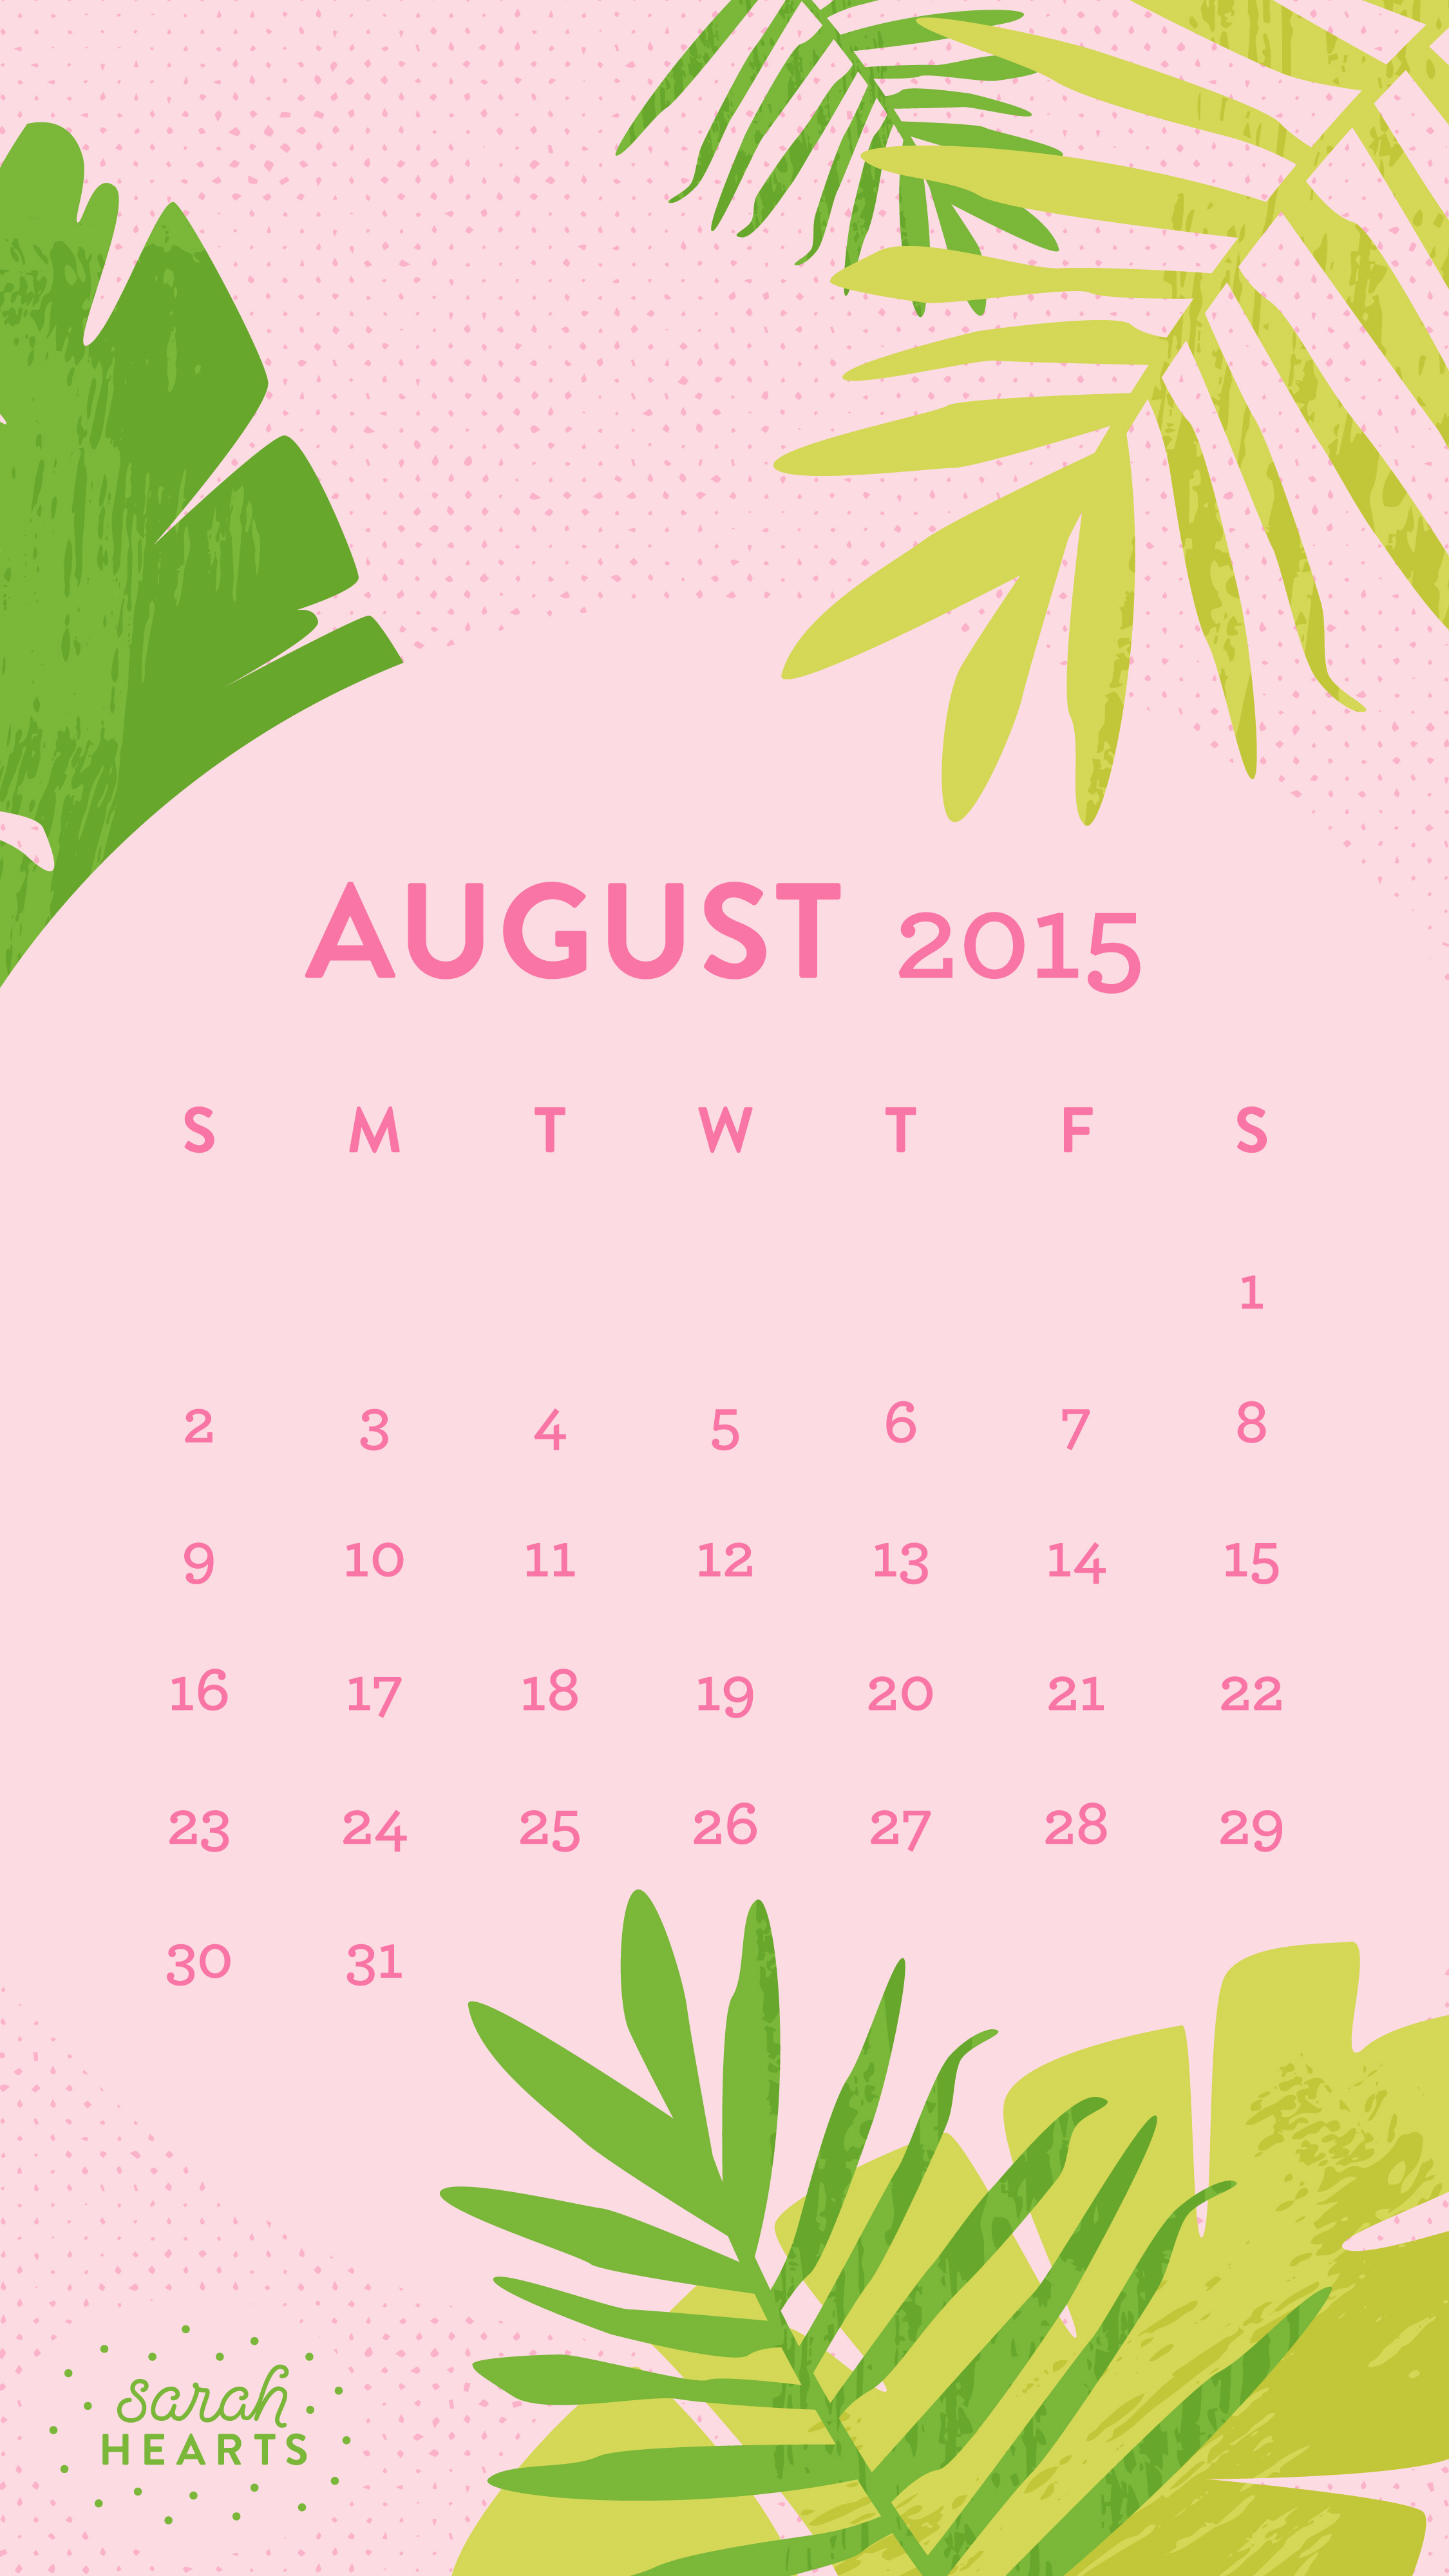 Iphone wallpaper the dress decoded - August Iphone Wallpaper August2015_wallpaper_calendar_iphone